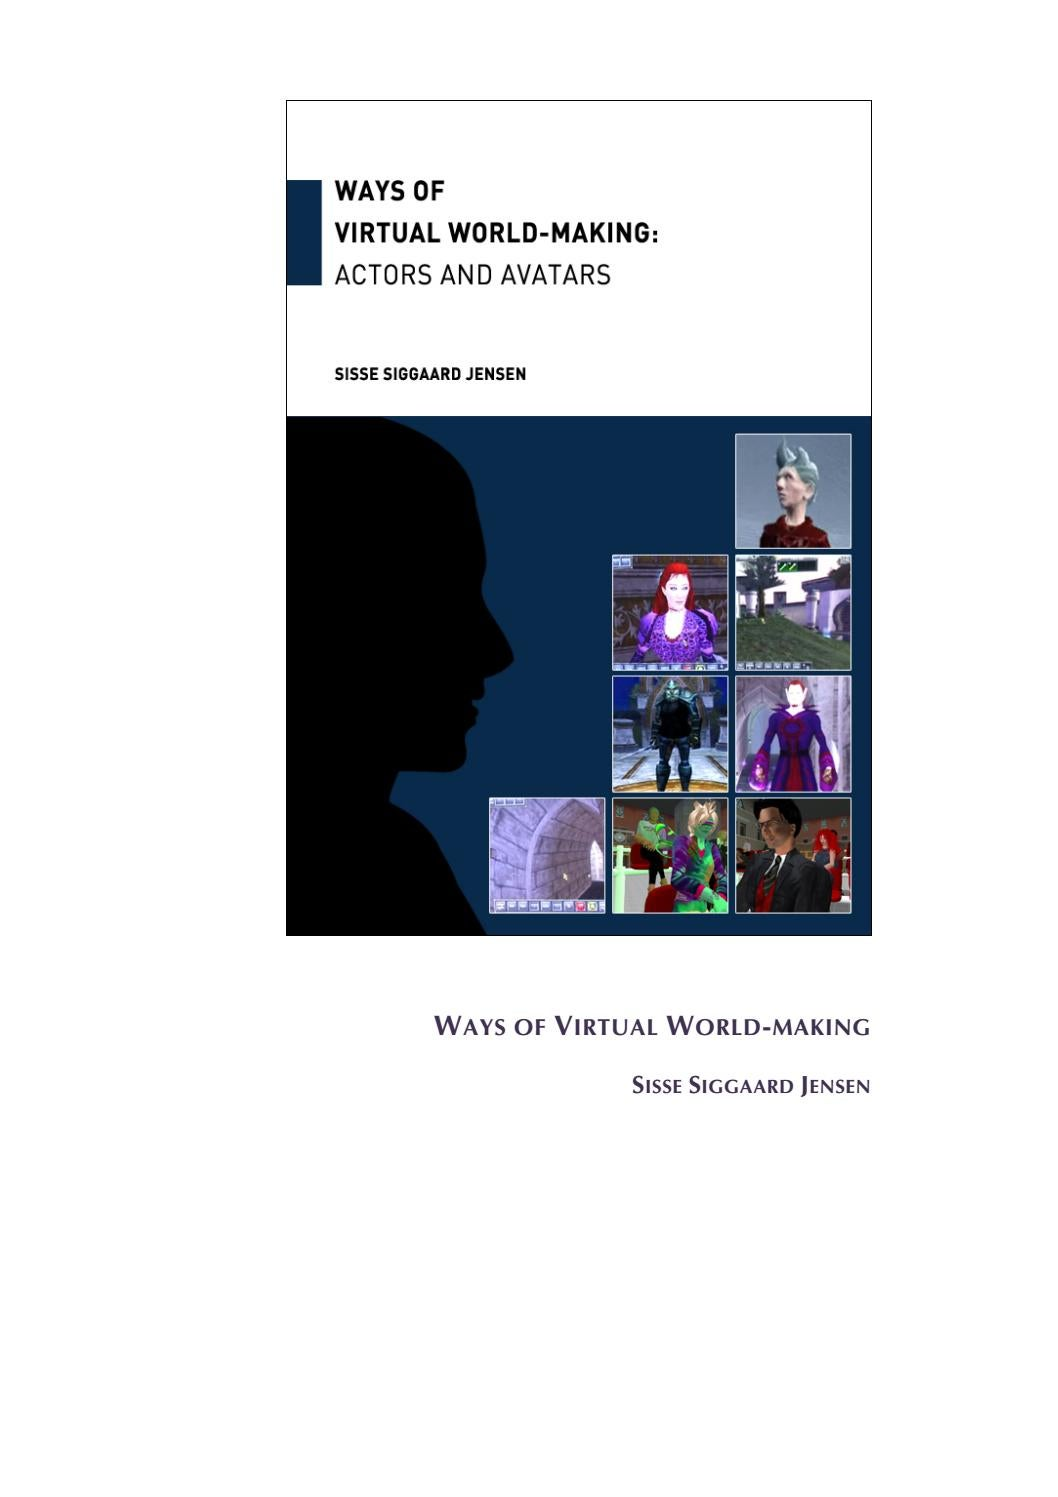 Sisse Siggaard Jensen: Ways of Virtual World-Making - Actors